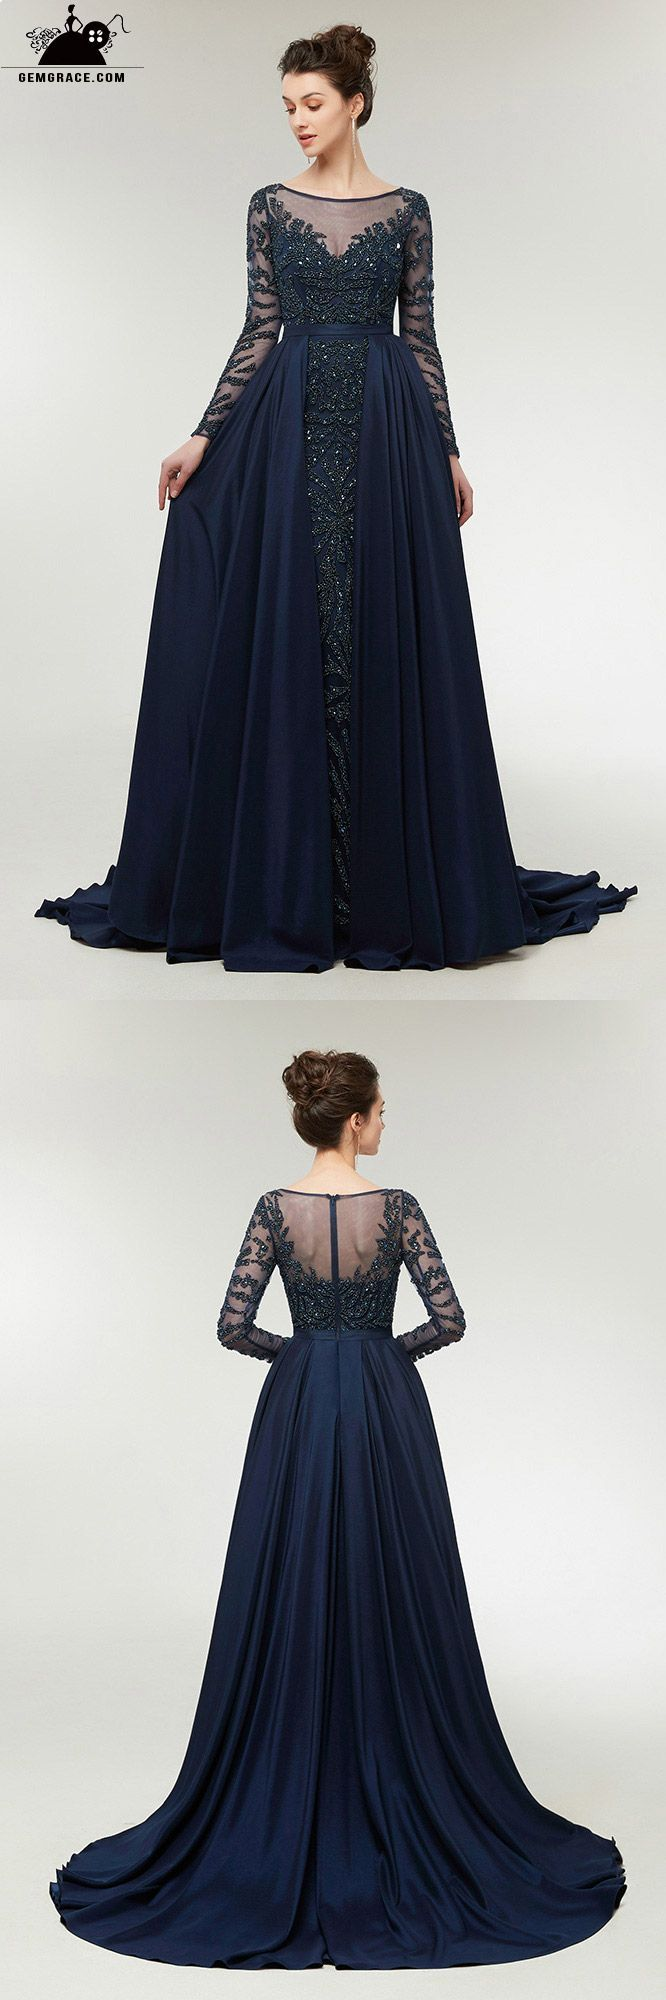 All beading navy blue slim prom dress with sleeves cape skirt c